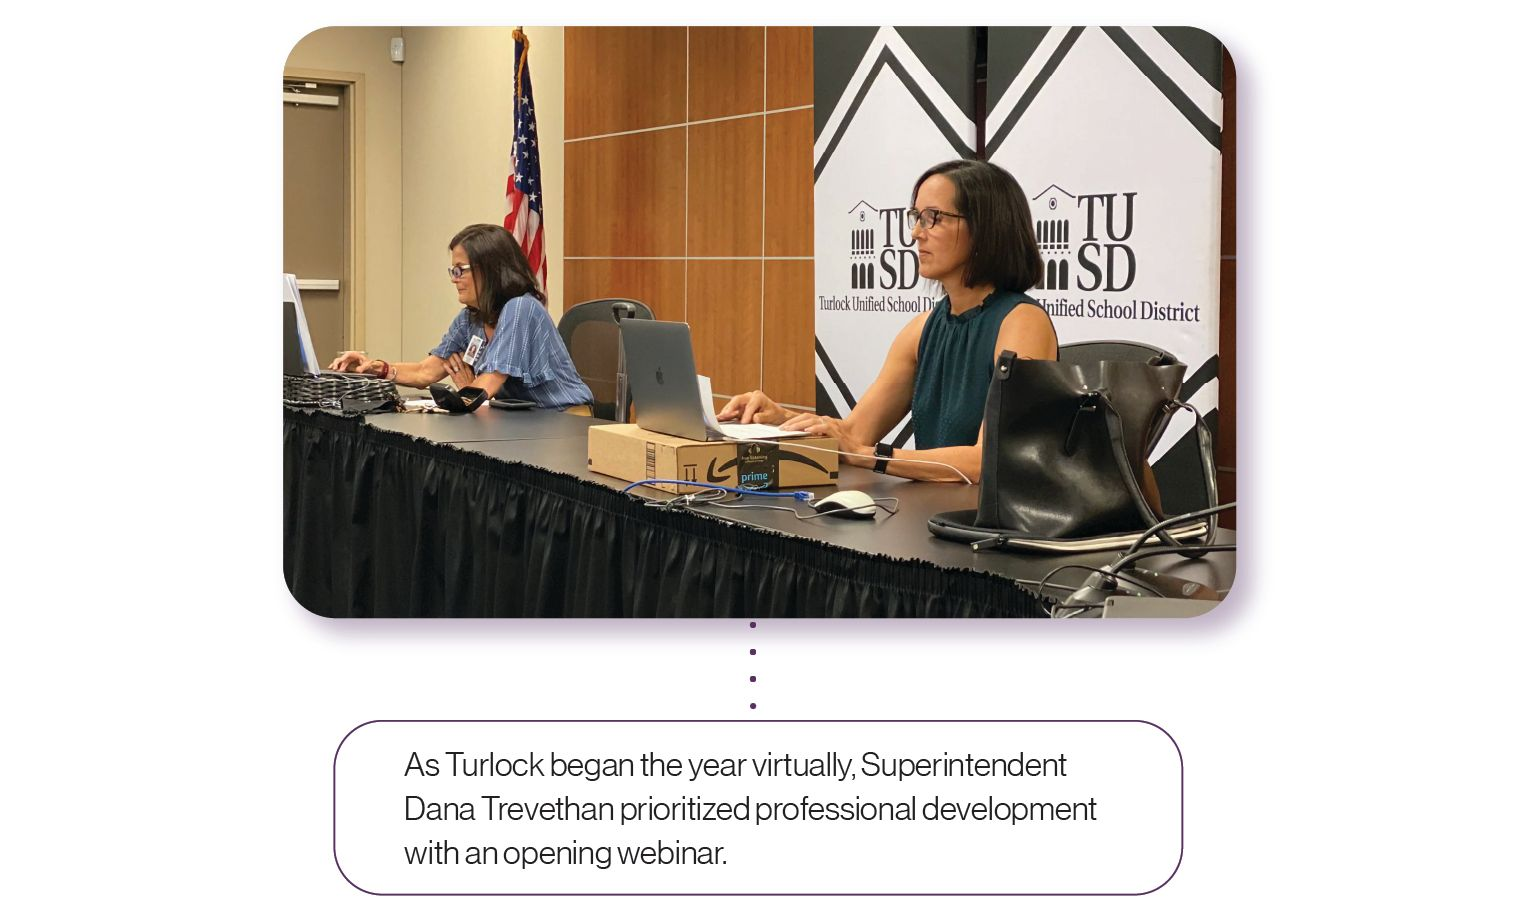 Image: As Turlock began the year virtually, Superintendent Dana Trevethan prioritized professional development with an opening webinar.